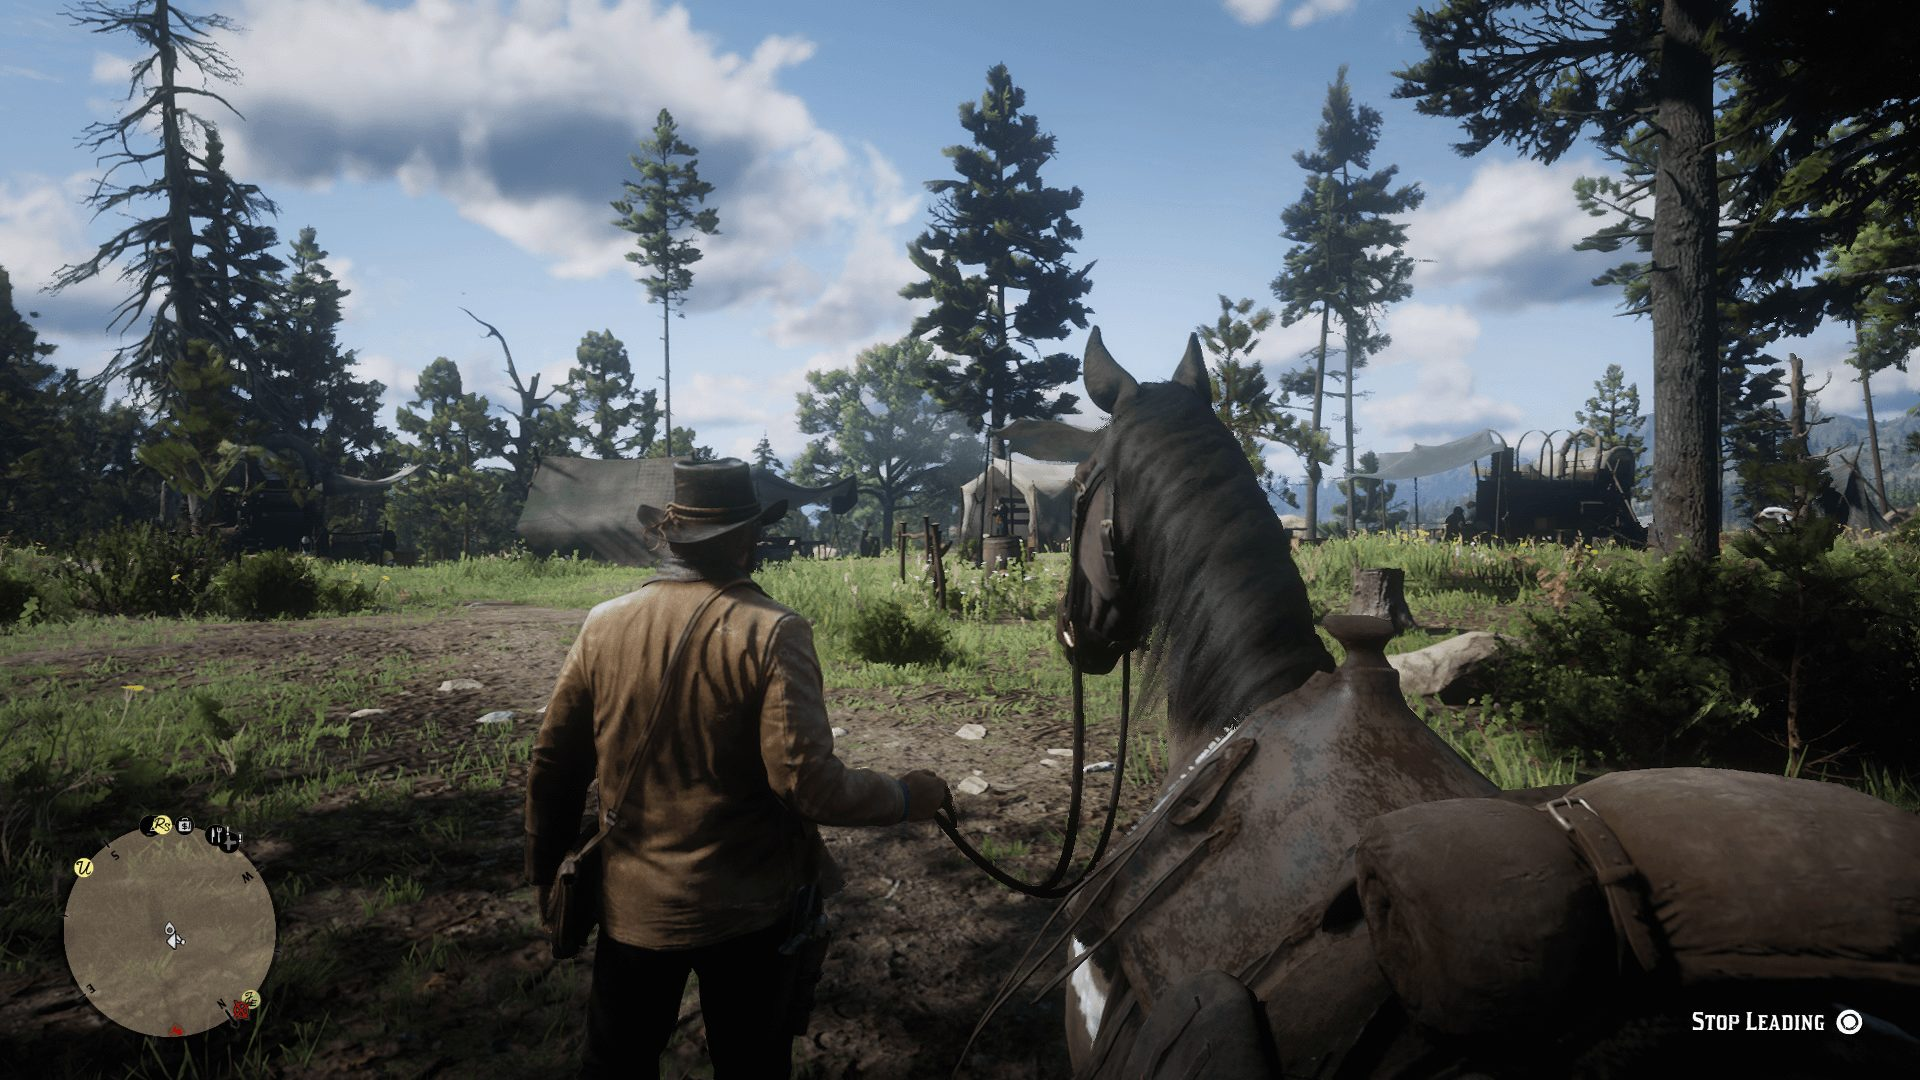 For Better or Worse, Red Dead Redemption 2 is Changing Gaming.